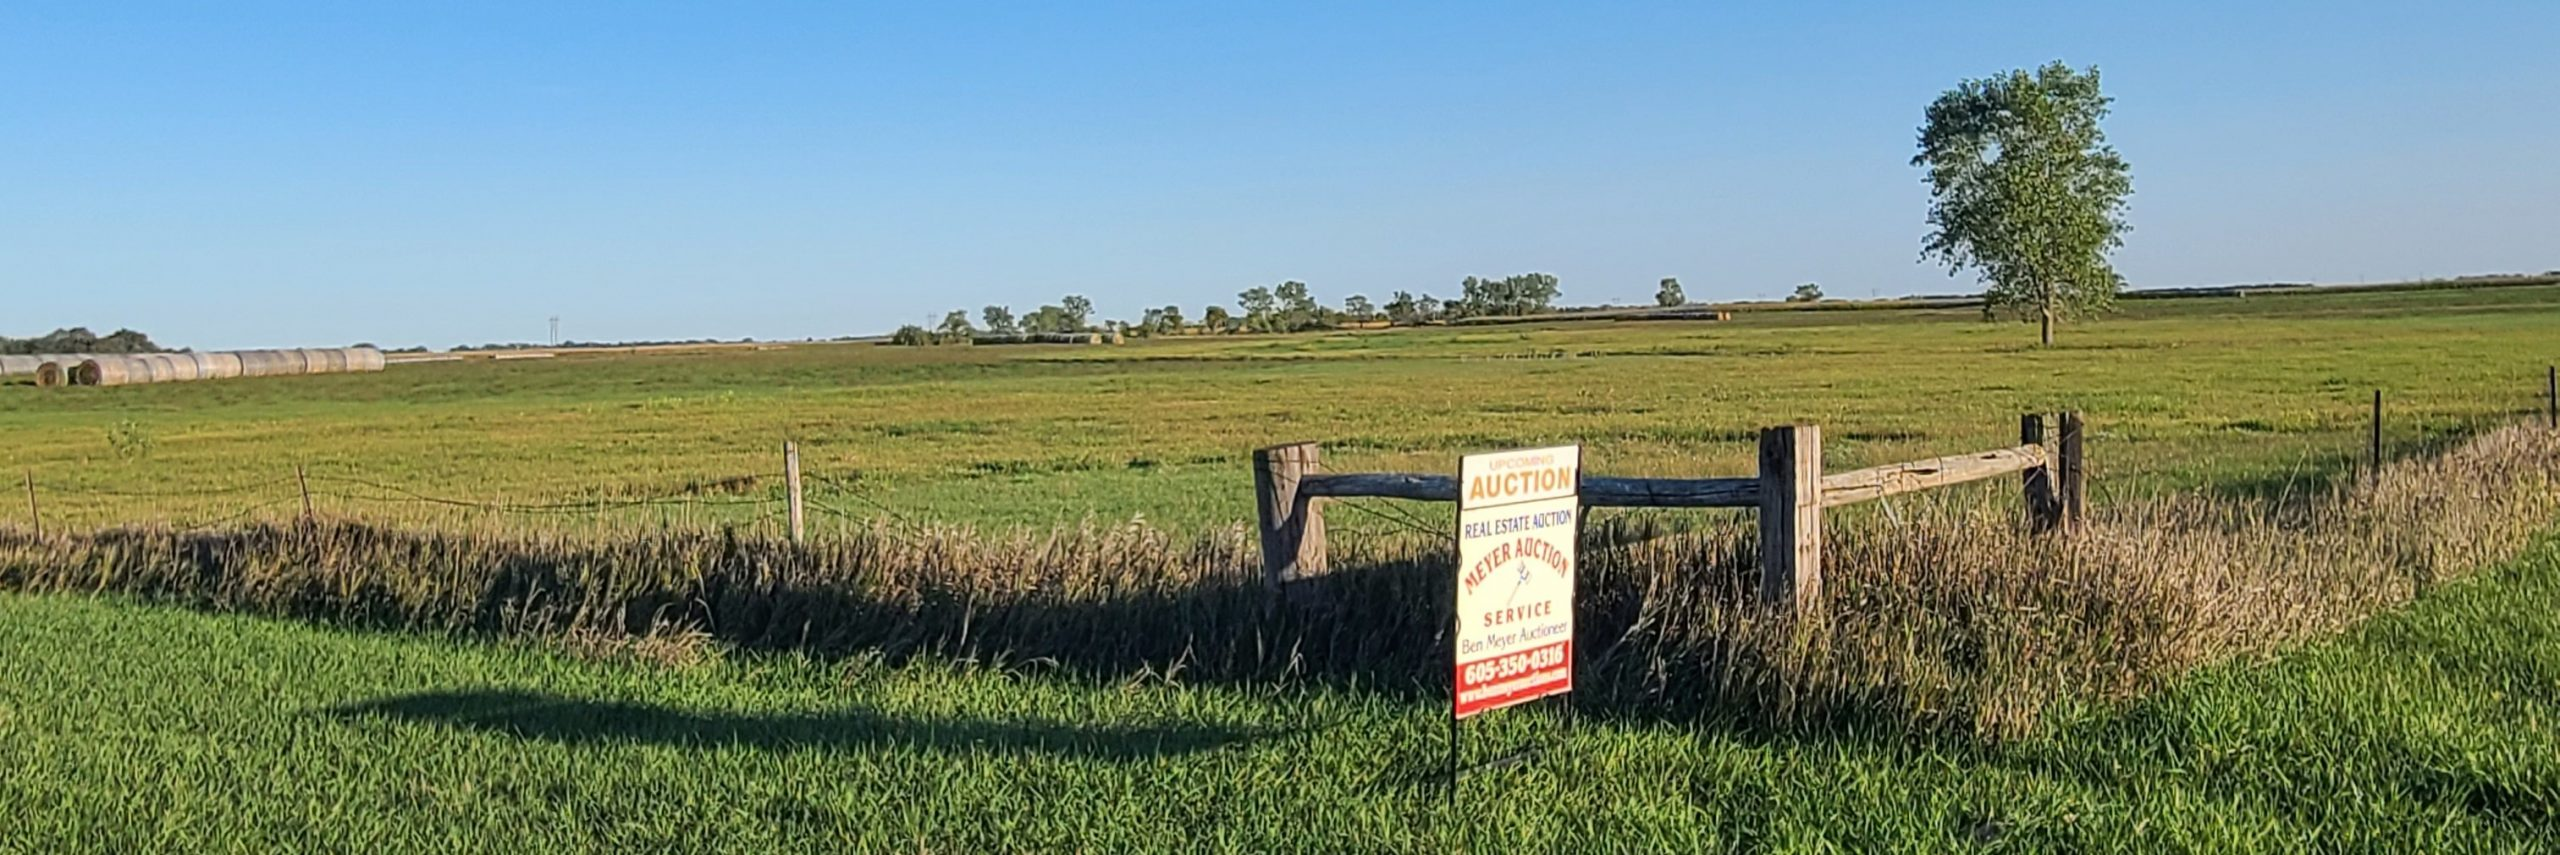 11/9 Beadle SD County Land Auction